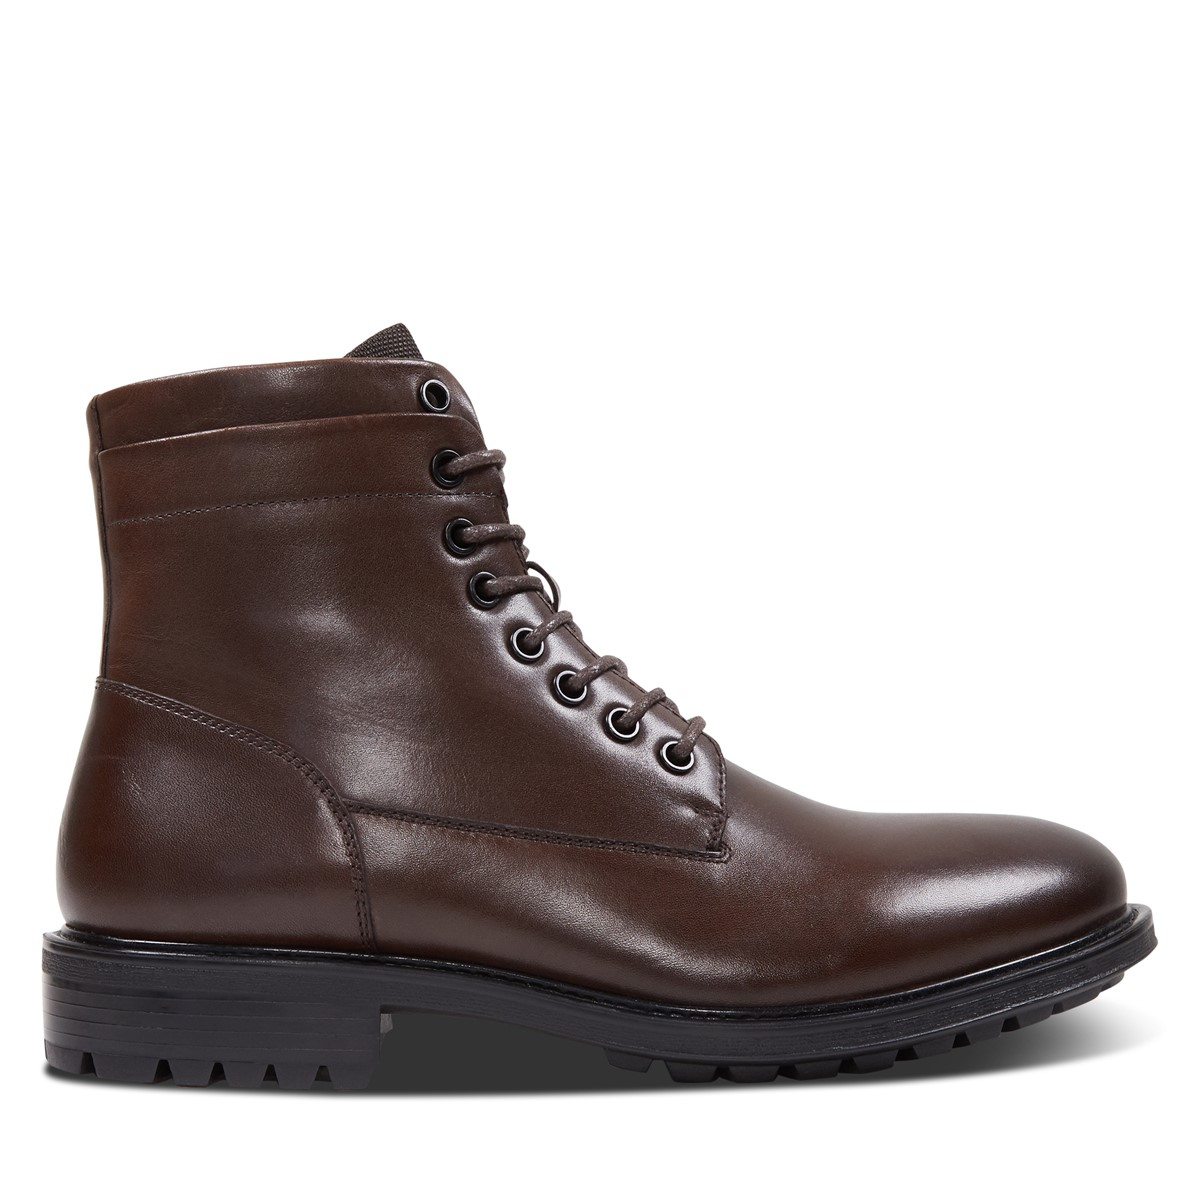 Men's Alex Lace-Up Boots in Brown